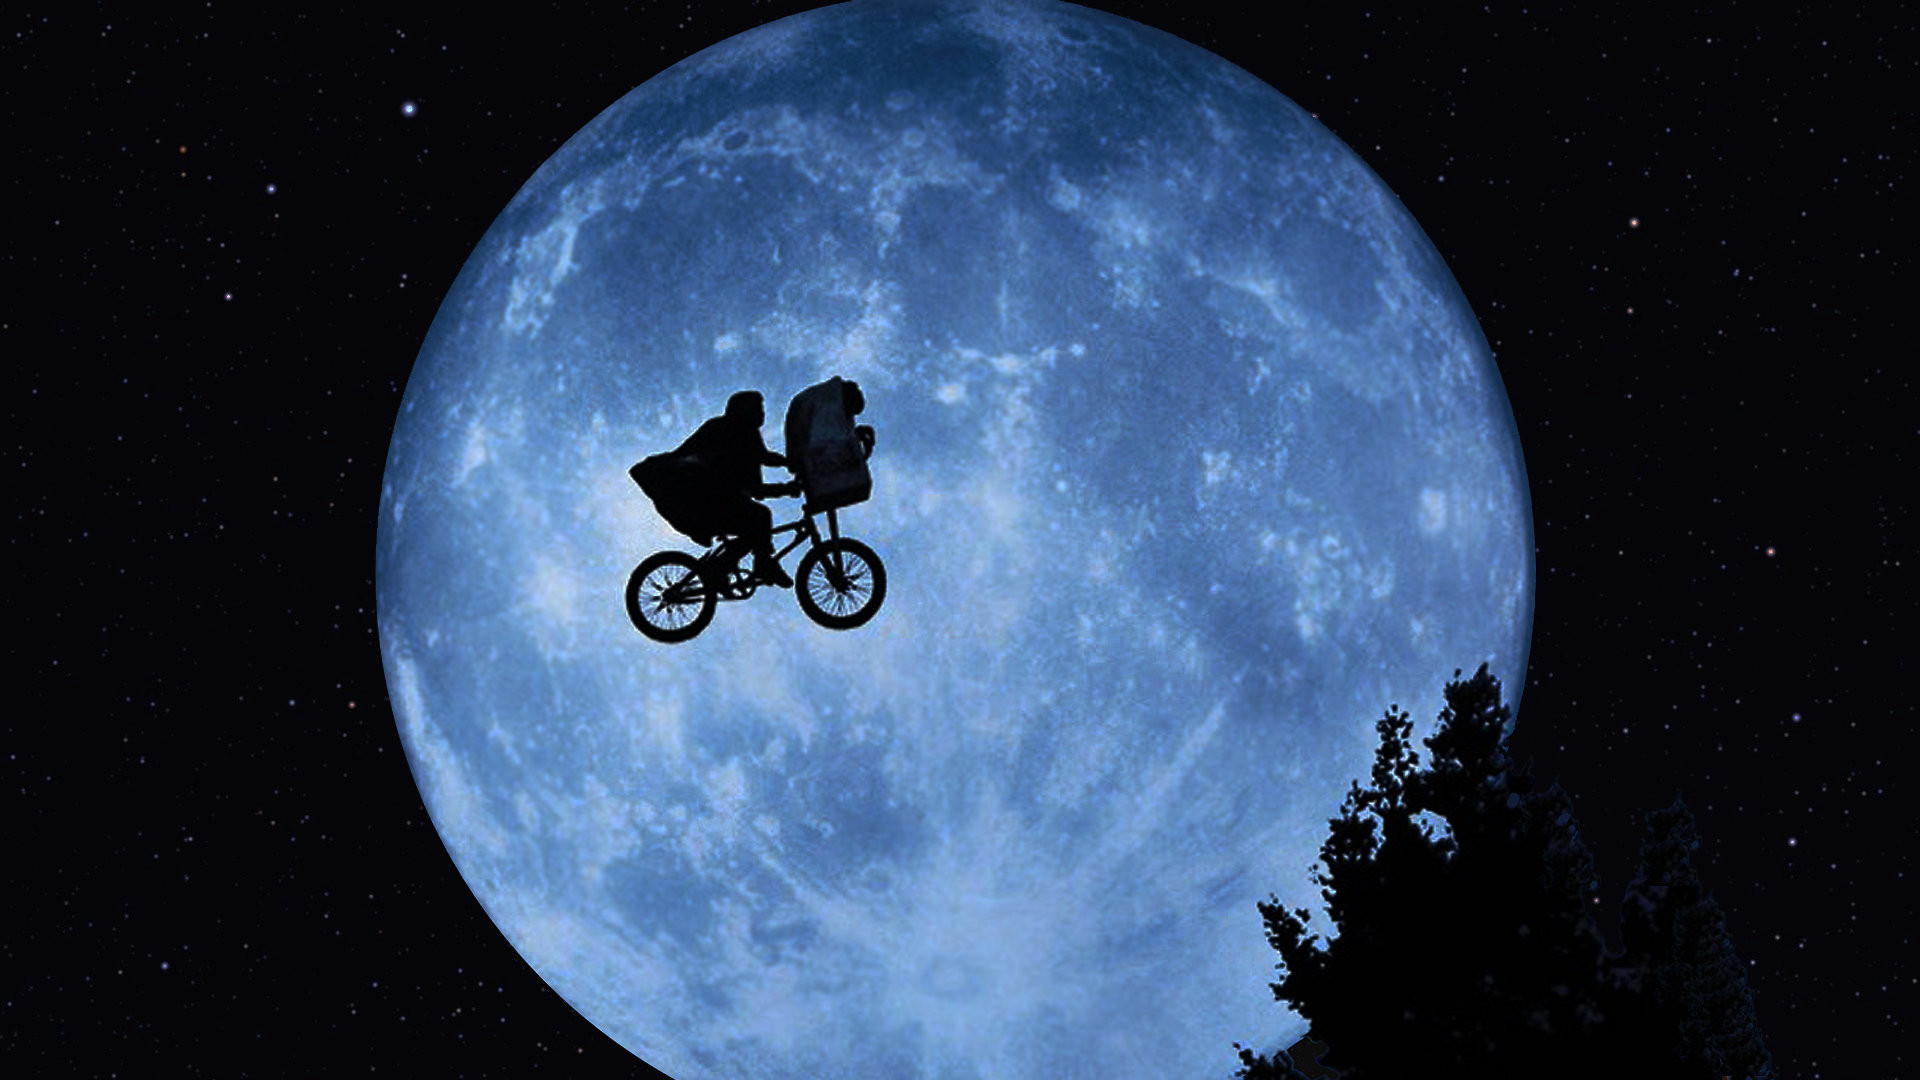 ET-Movie.jpg